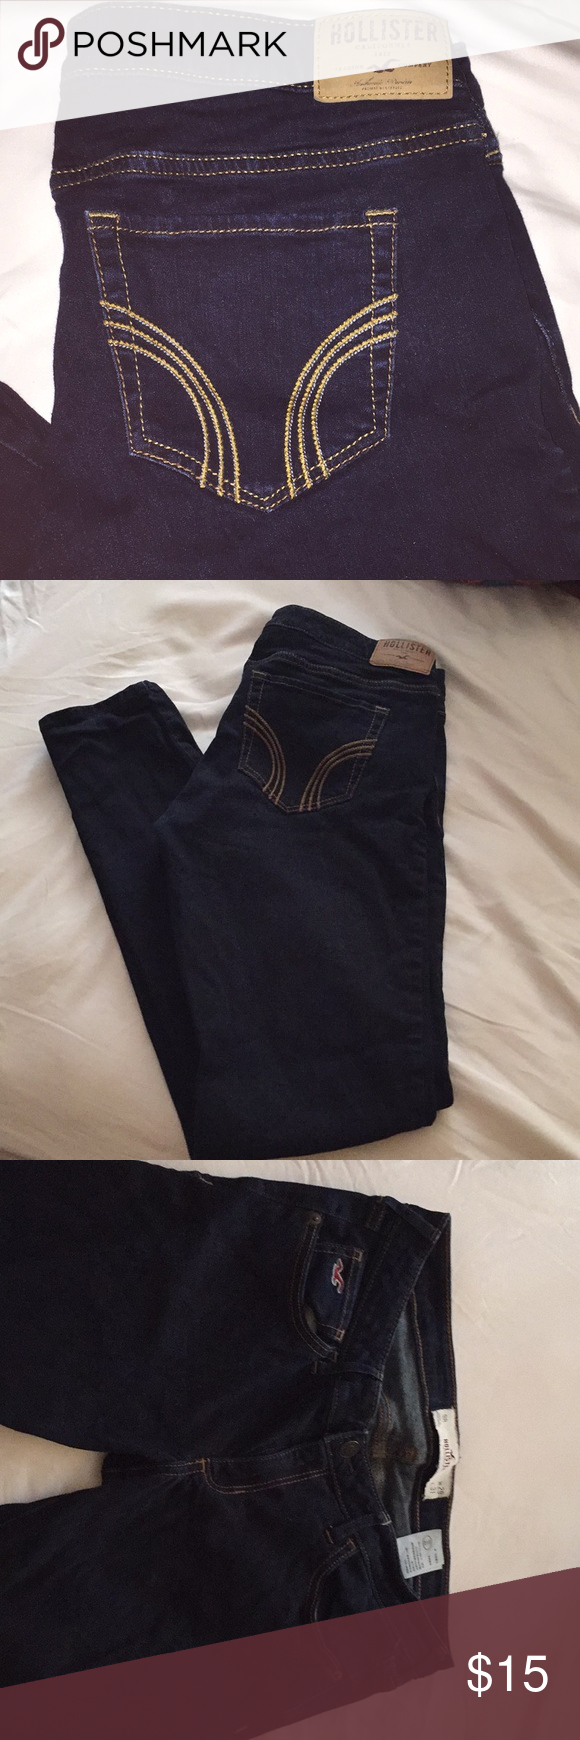 HOLLISTER jeans. 50% OFF any top that is bundled